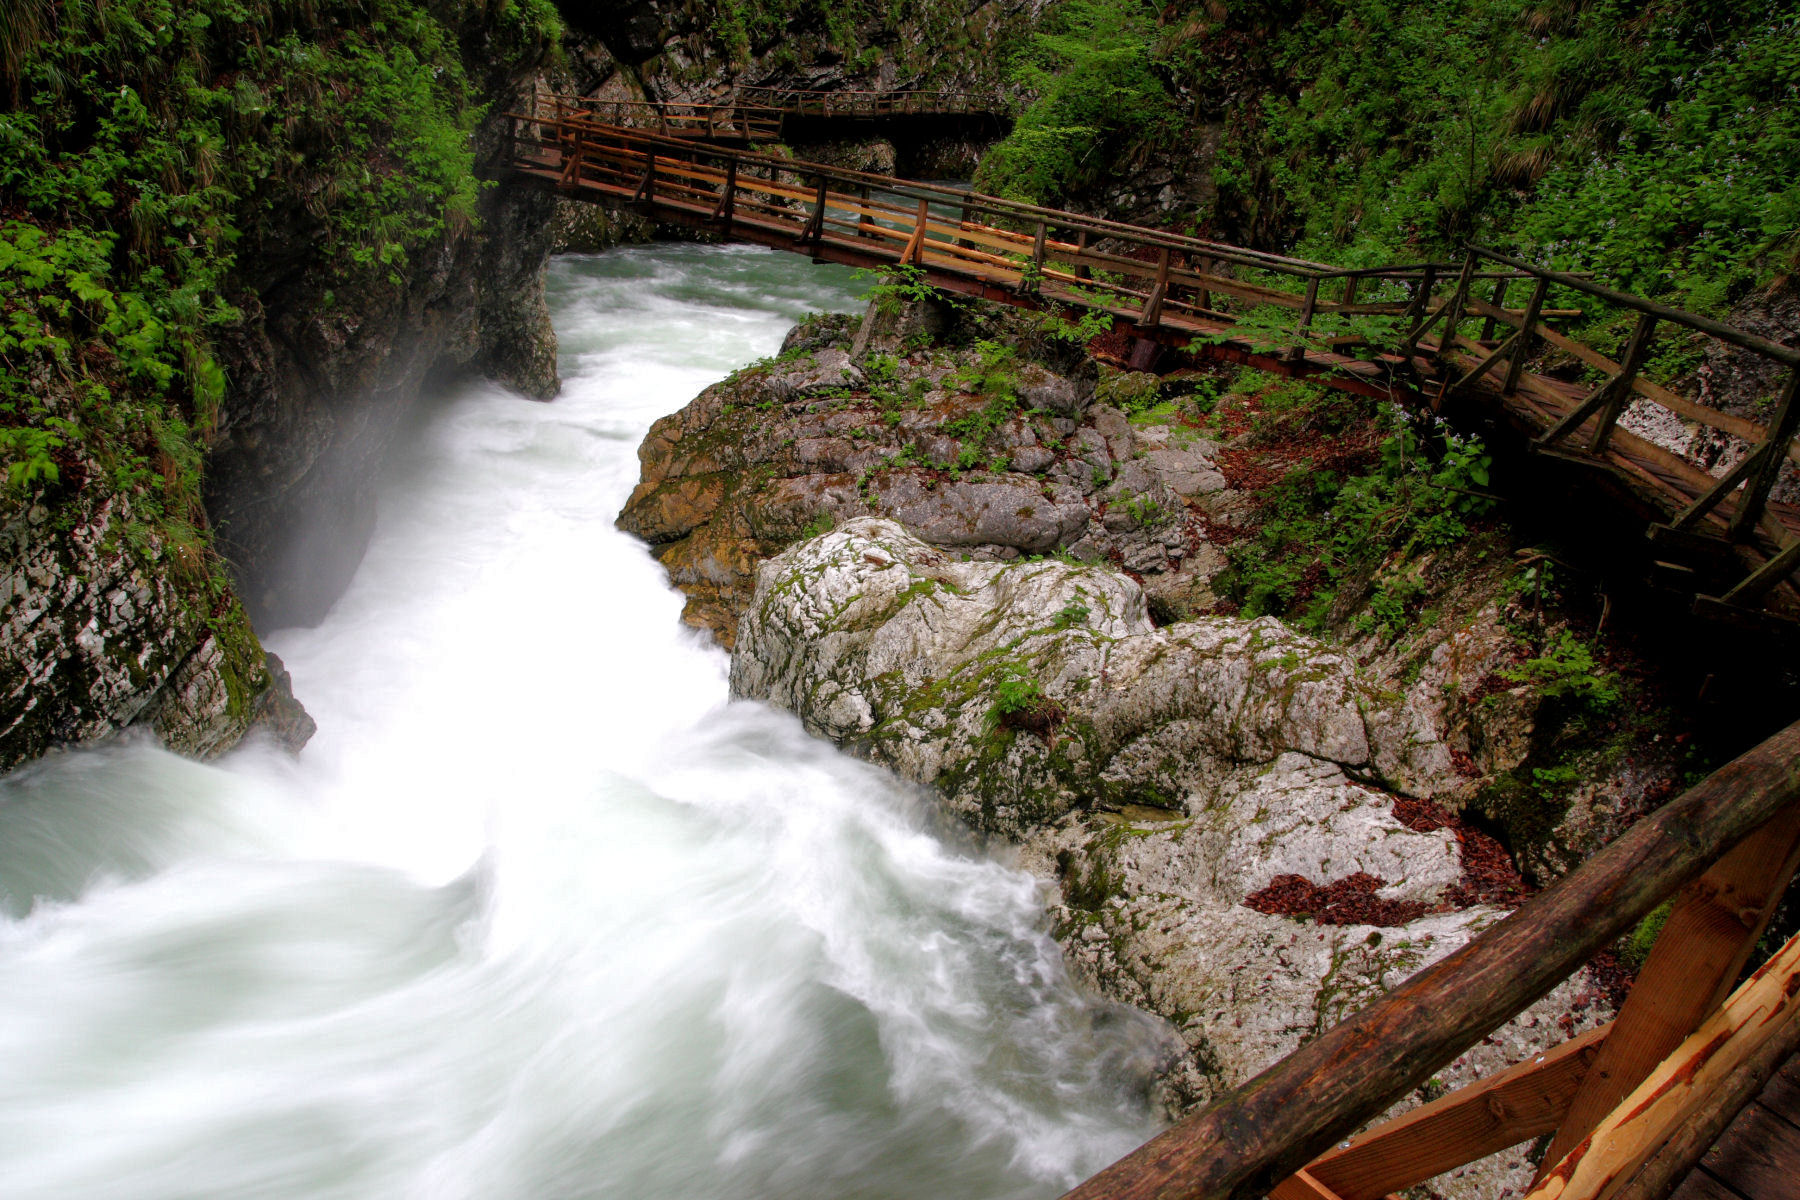 Vintgar Gorge is a real jewel located near Lake Bled, Slovenia